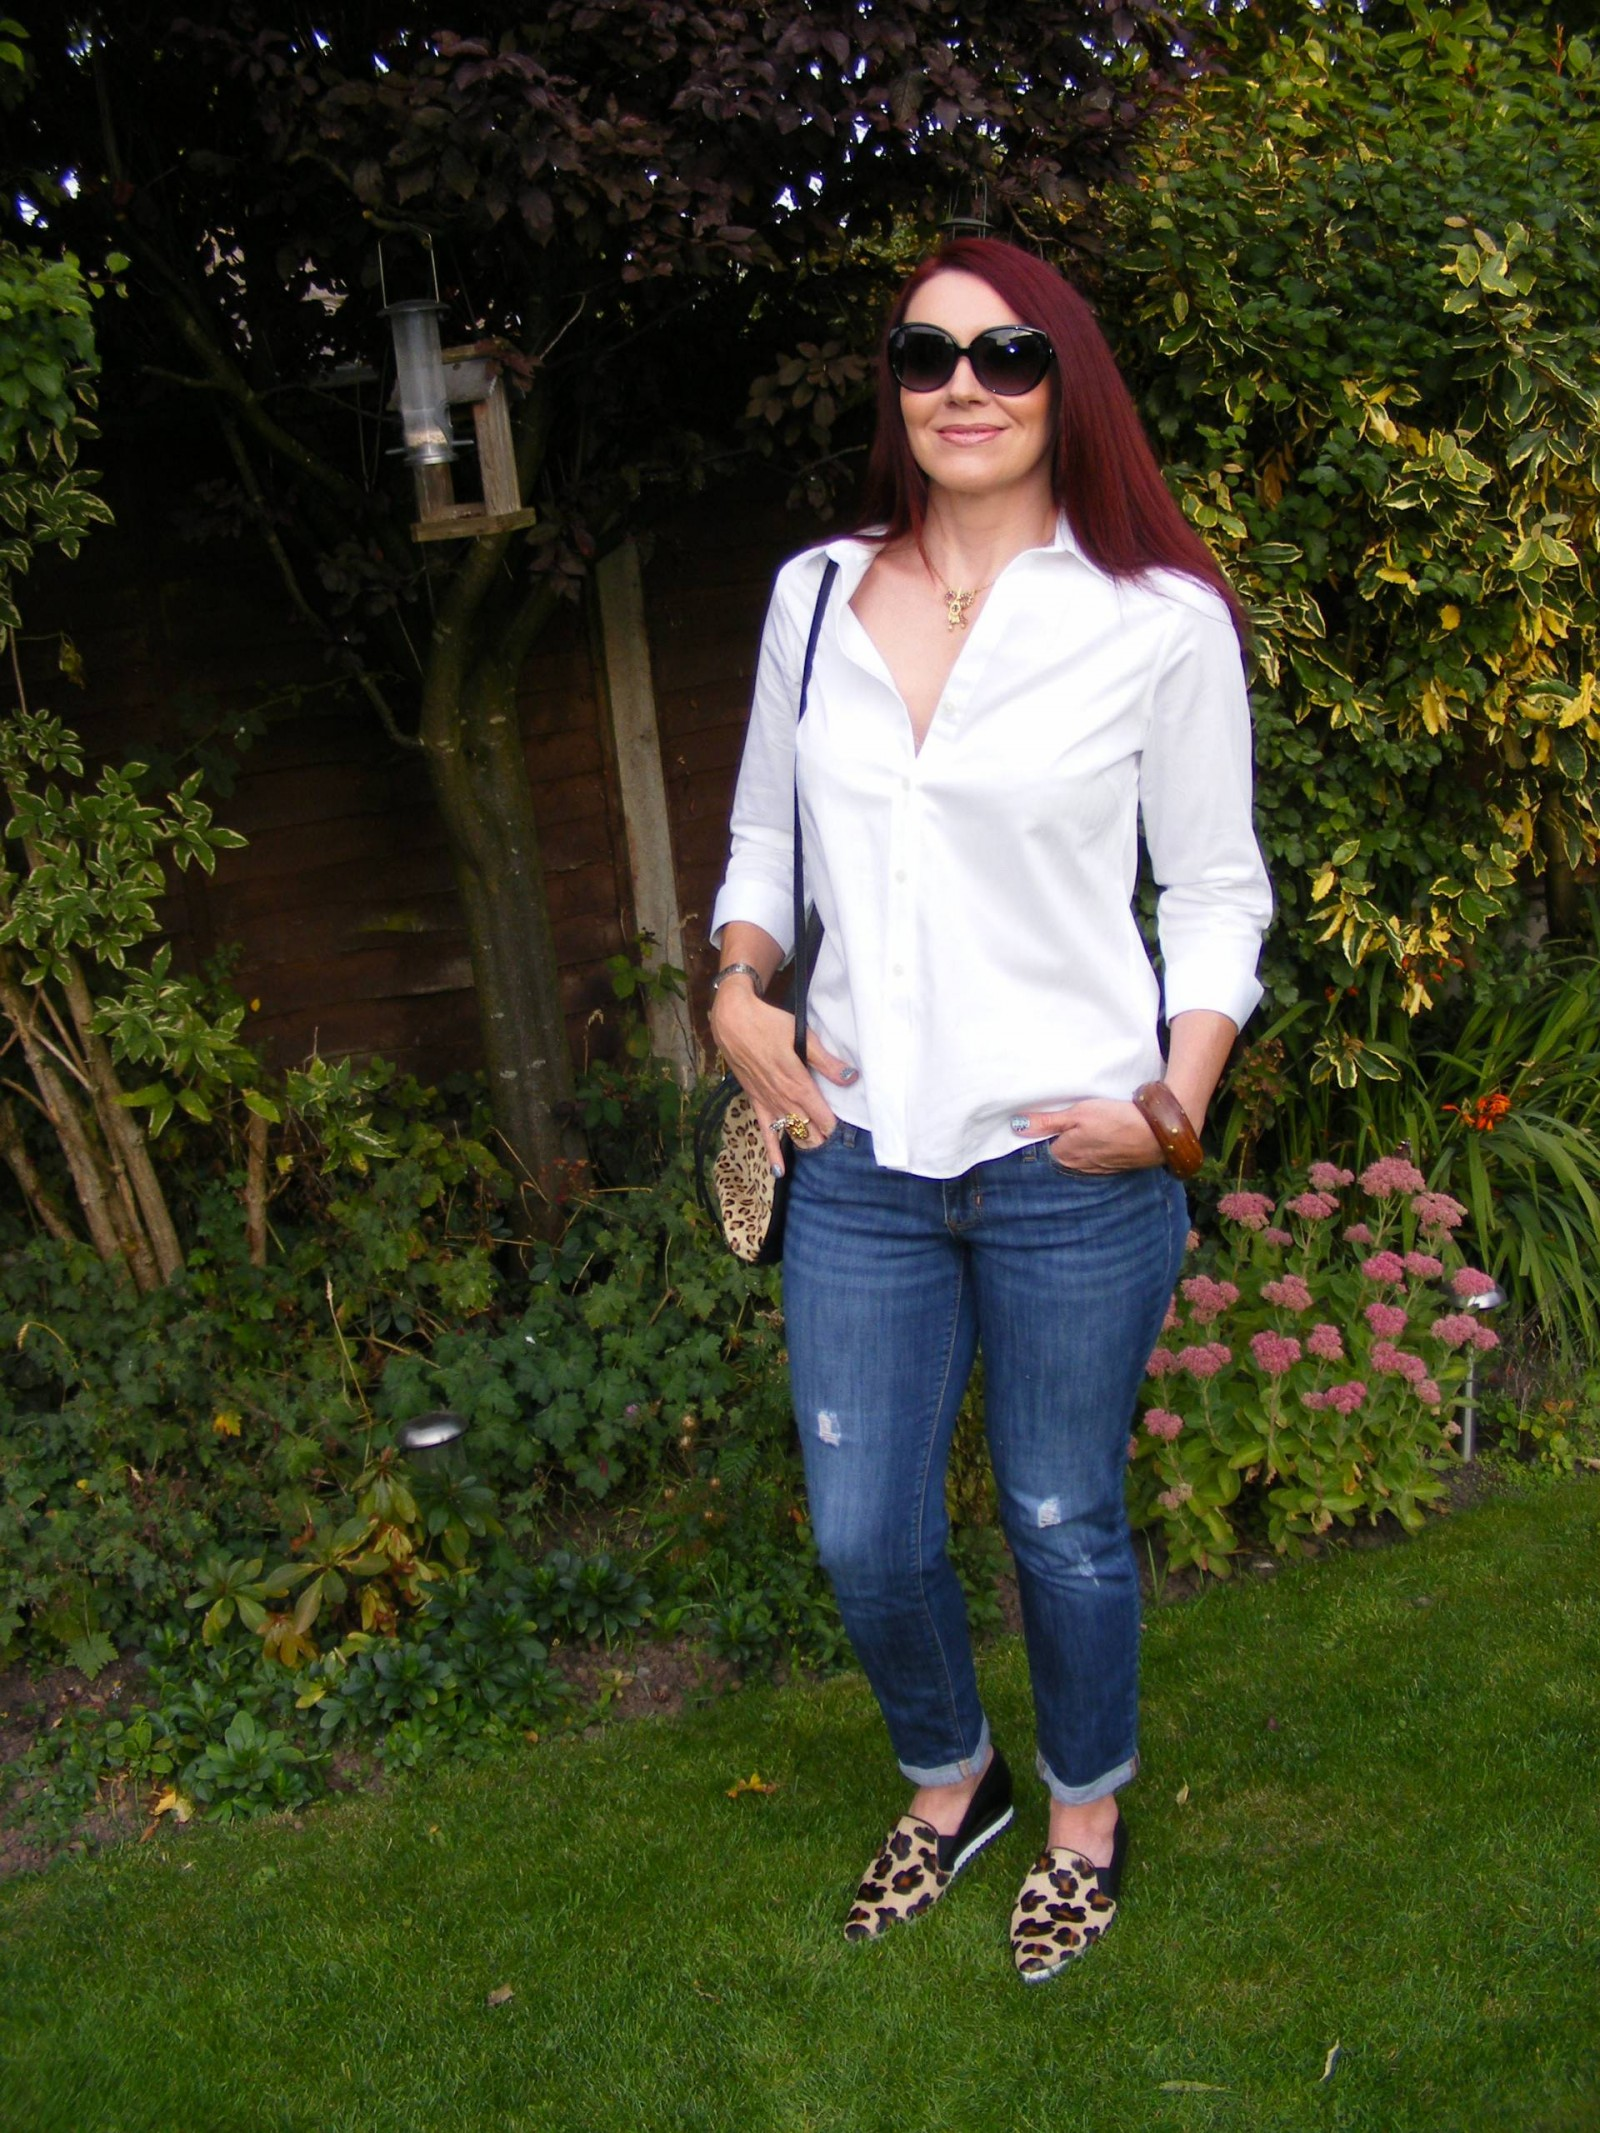 Gap boyfriend jeans and white shirt